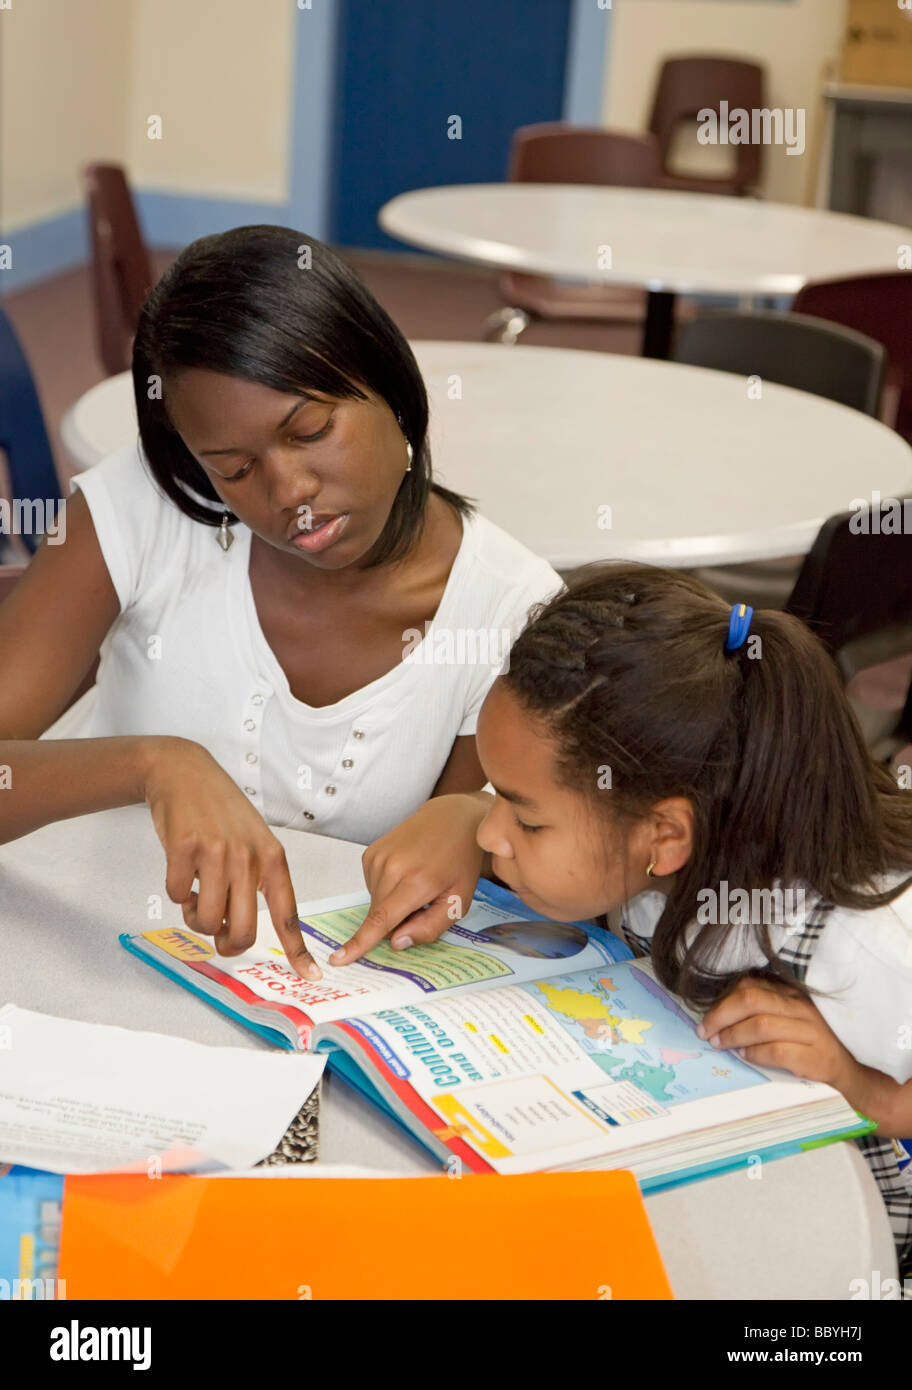 After school tutoring at community center in New Orleans - Stock Image